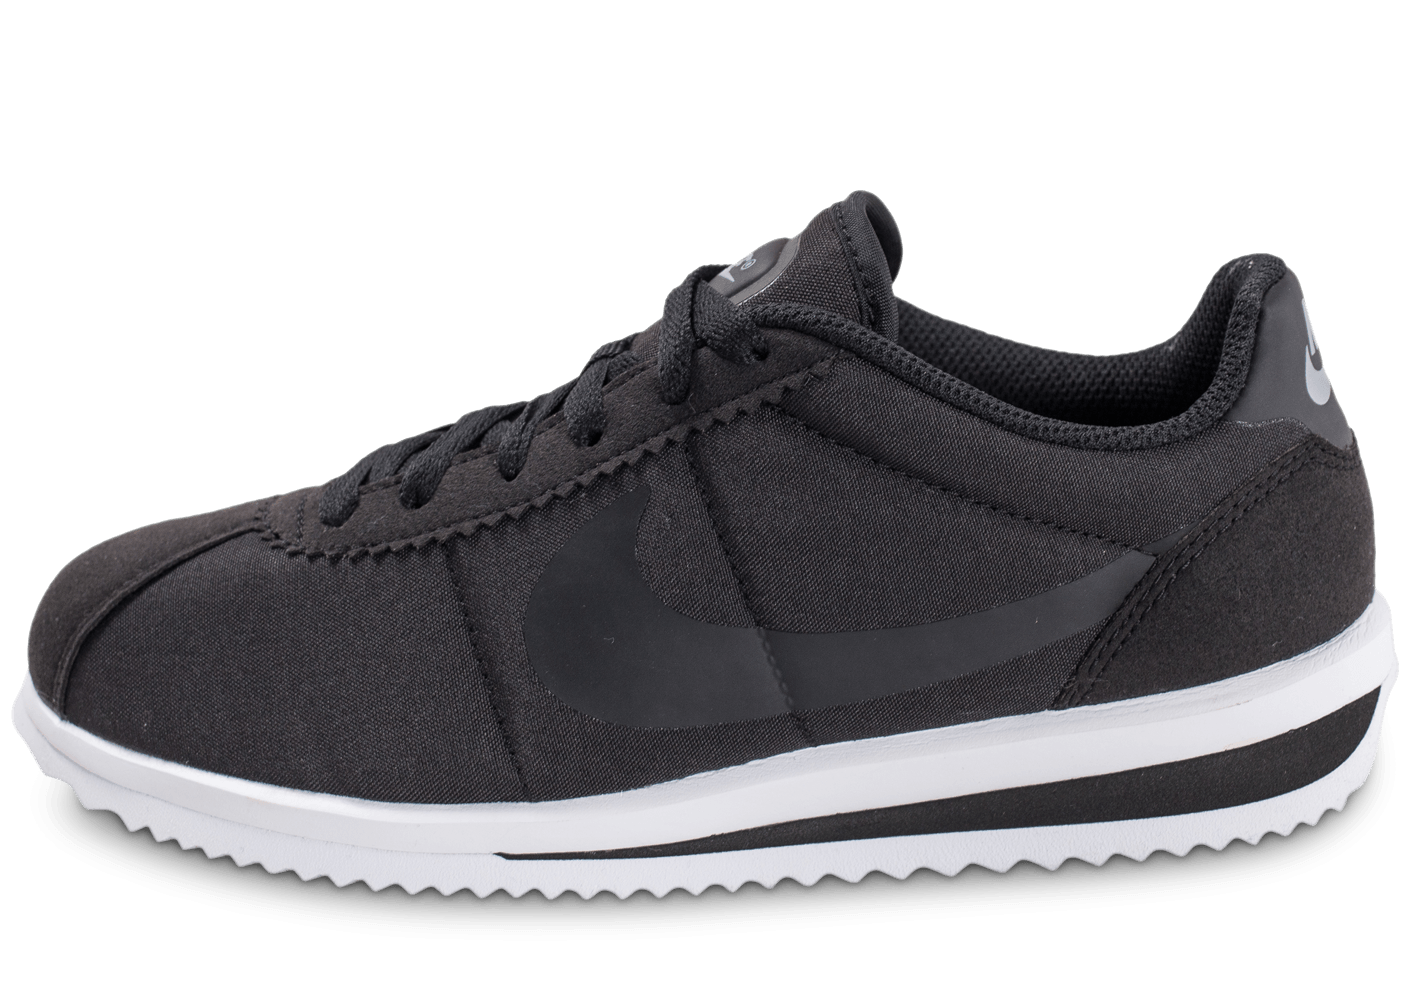 nike cortez ultra junior noire chaussures enfant chausport. Black Bedroom Furniture Sets. Home Design Ideas